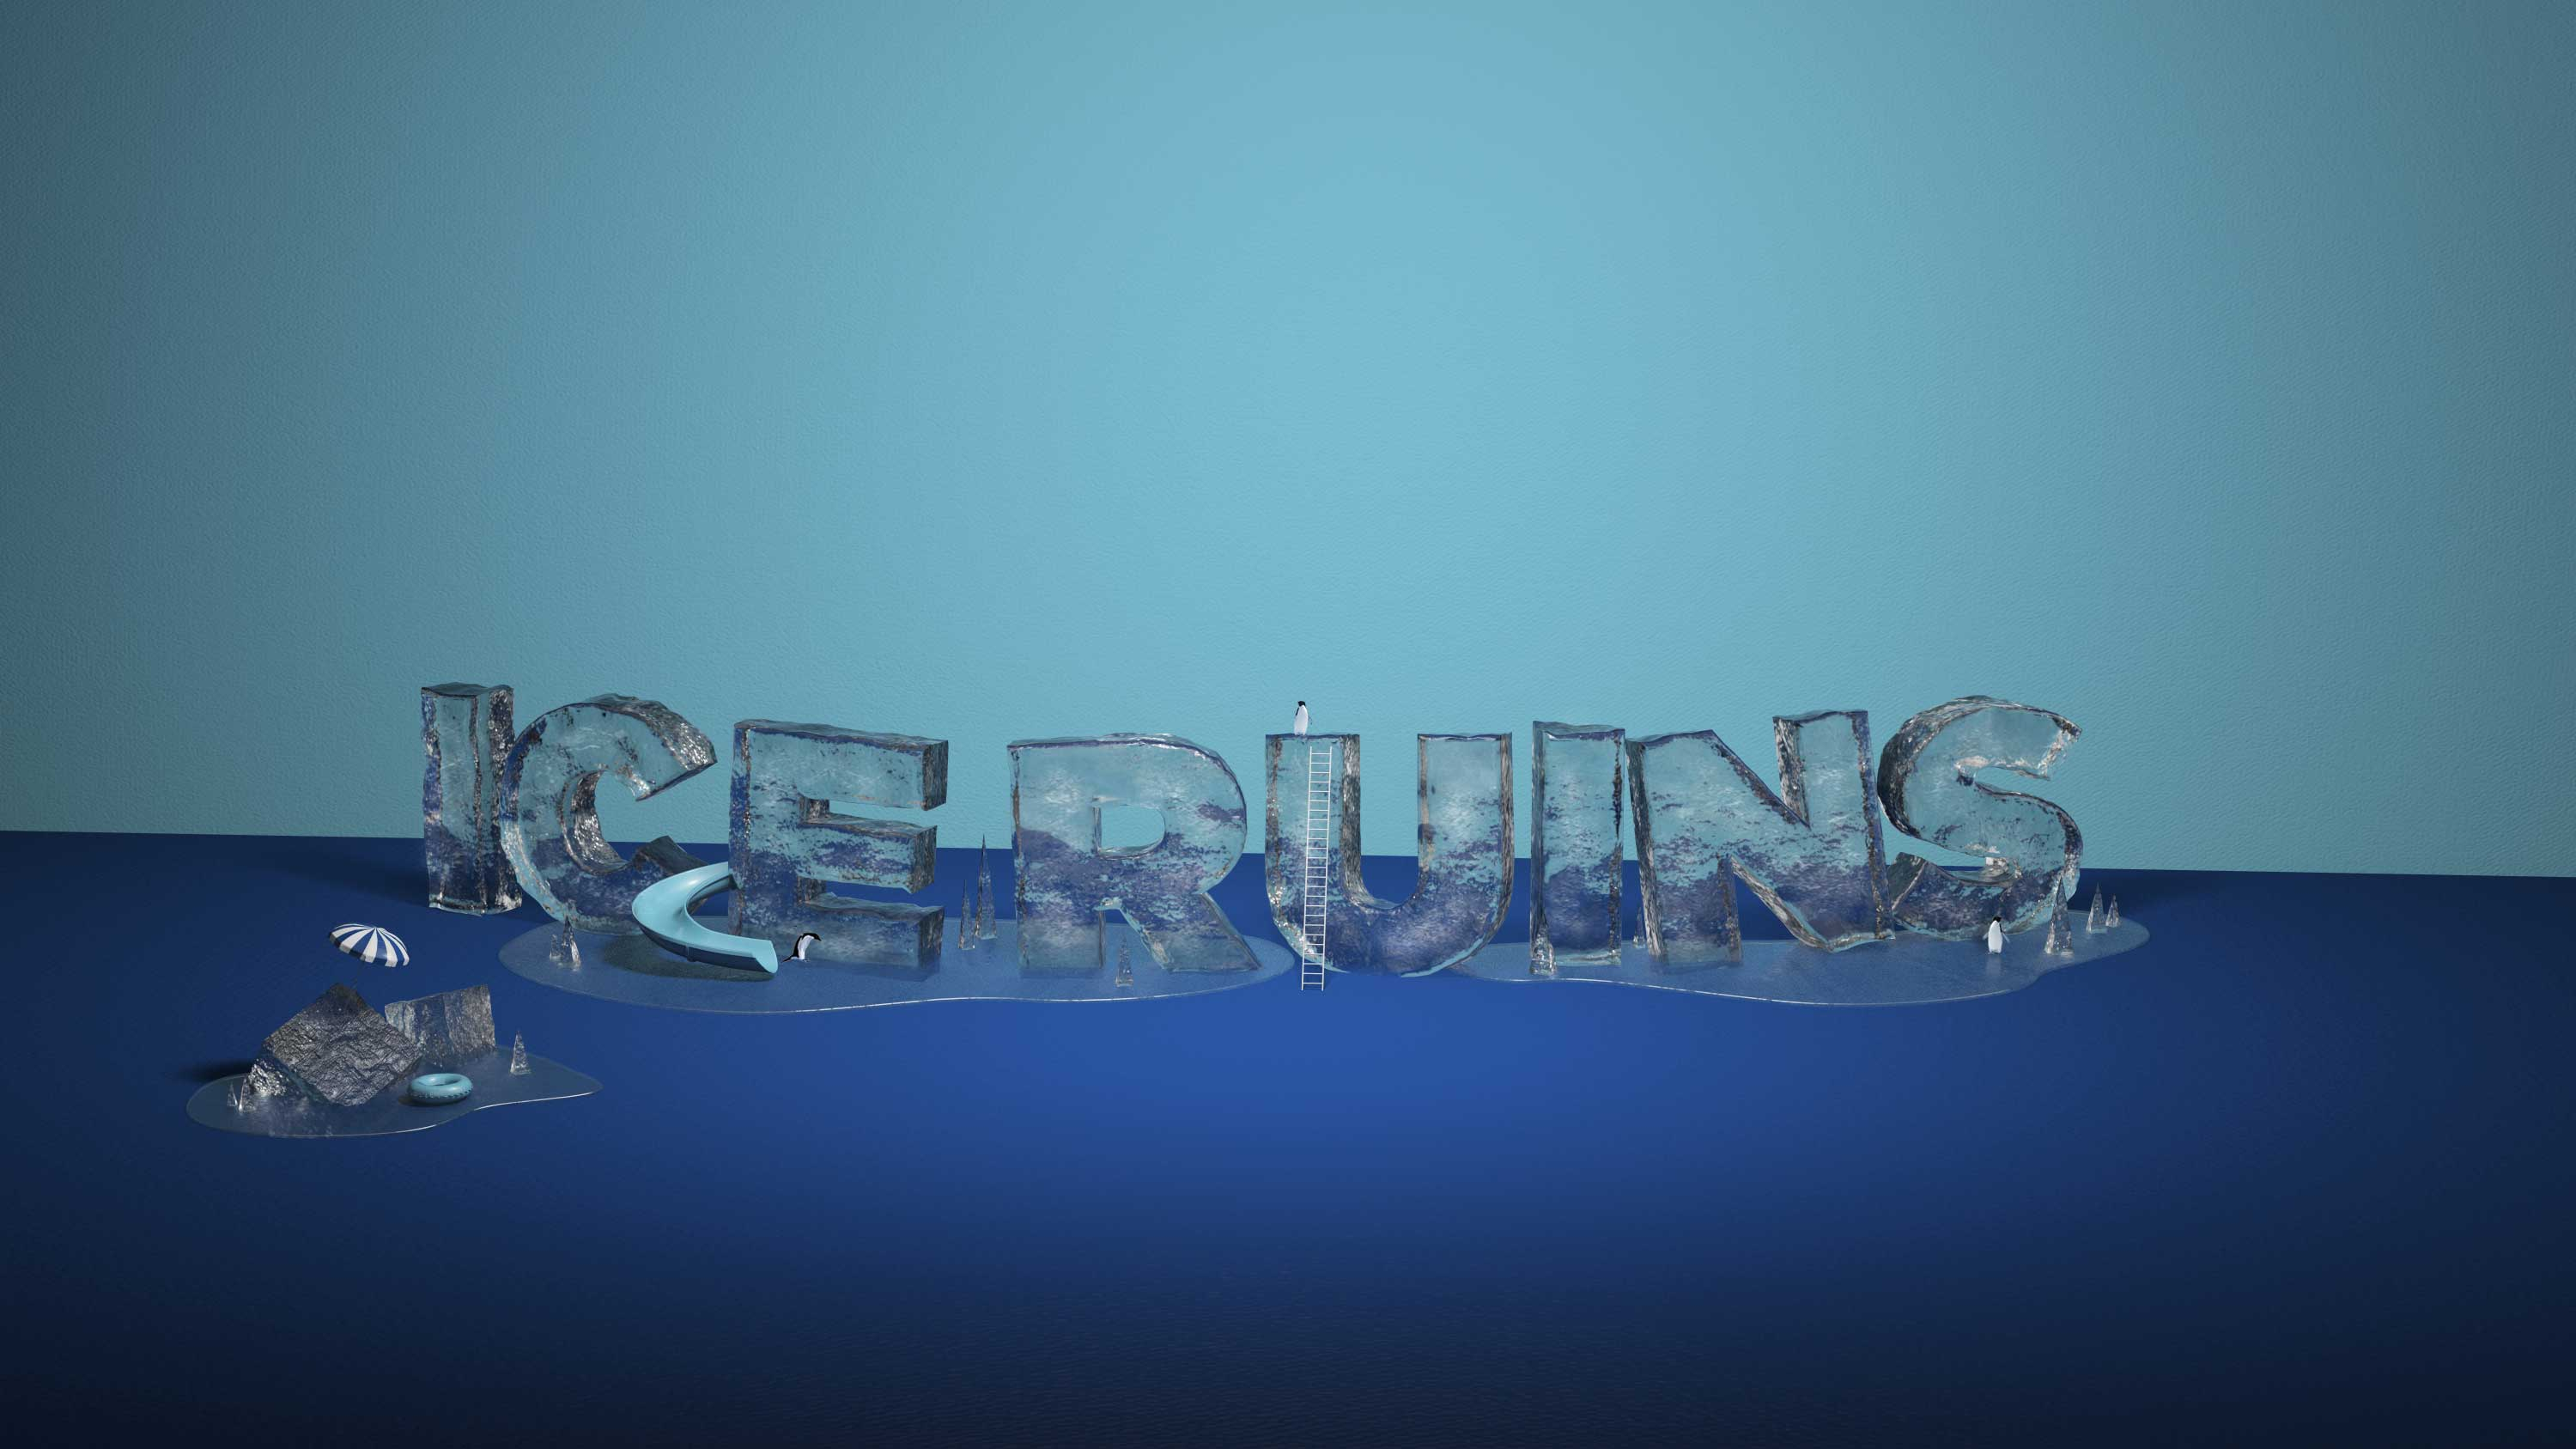 cgi-logos-type-design-3D-graphic-design-of-the-word-ice-ruins-made-out-of-ice-Nico Castro